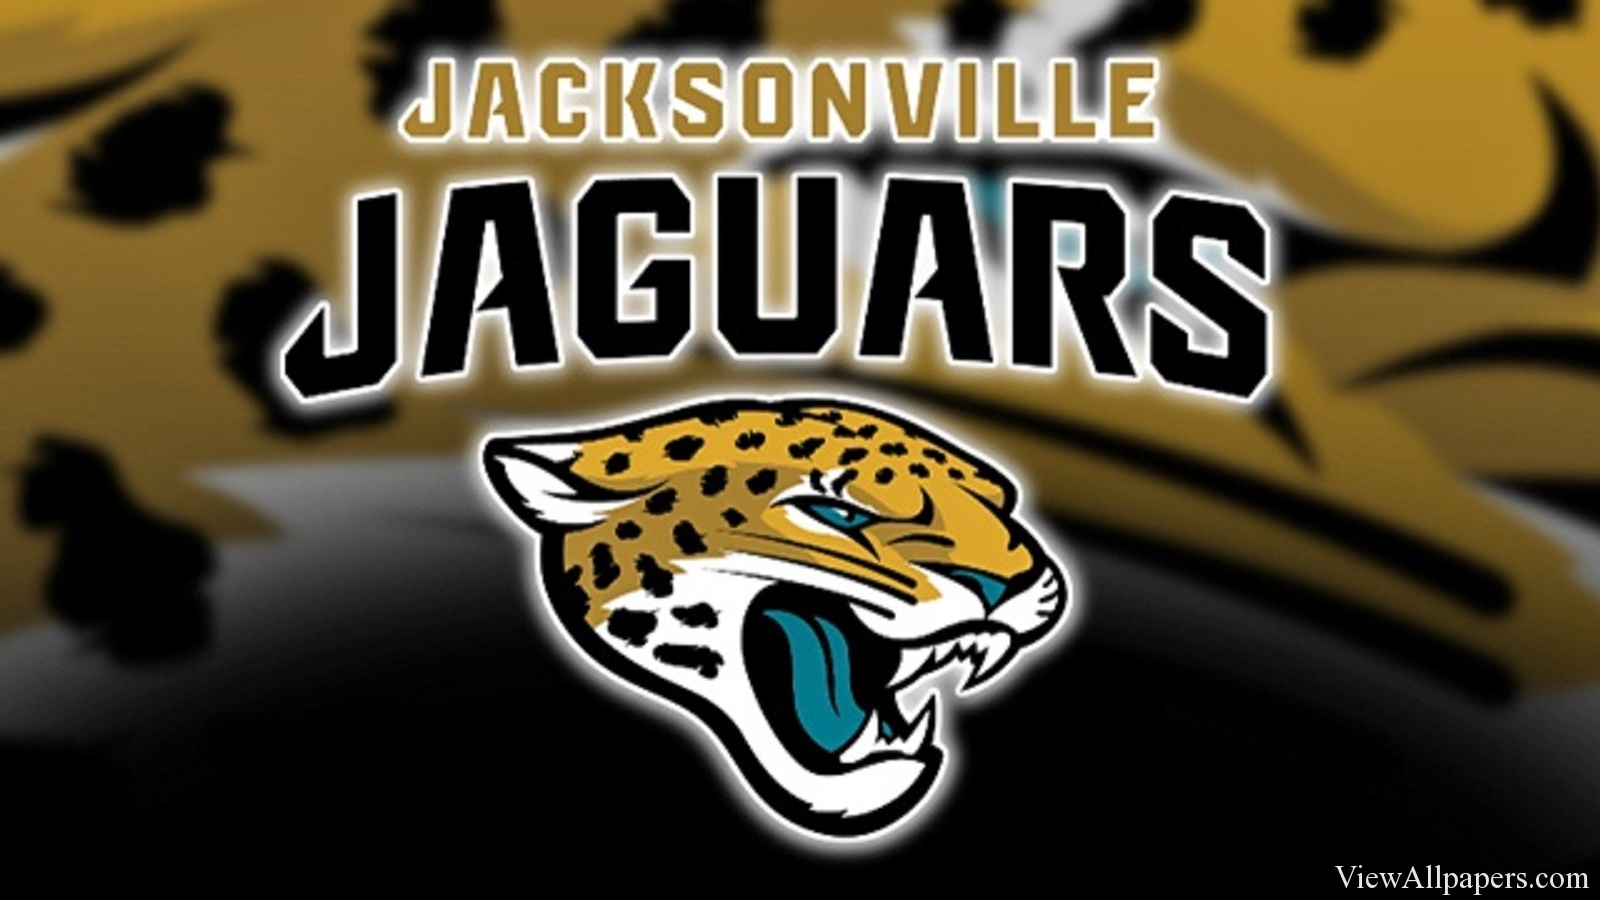 Jacksonville Jaguars Logo HD Resolution Wallpaper download 1600x900